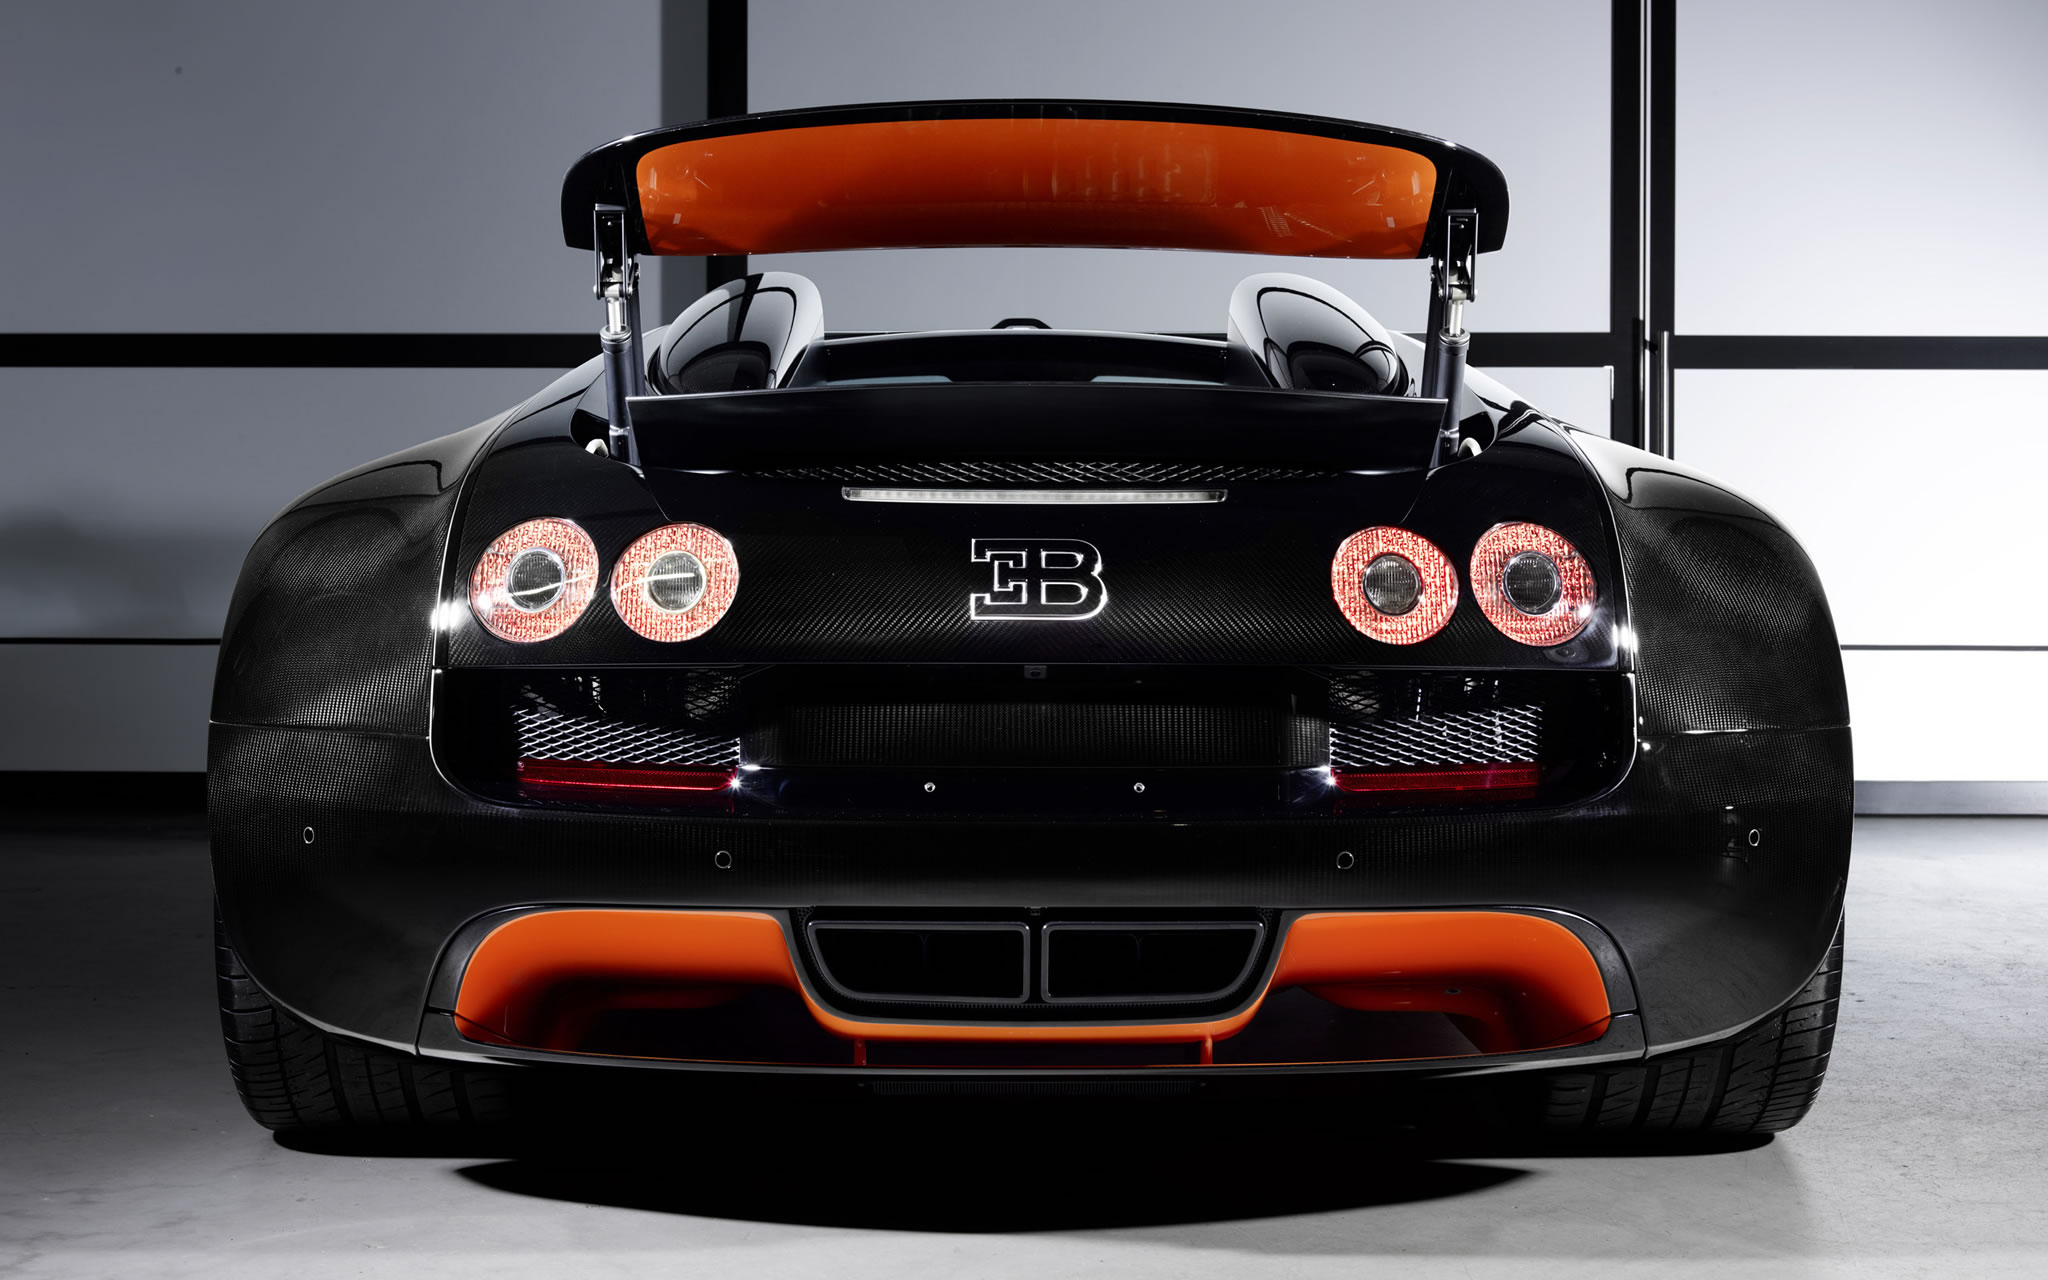 2013 bugatti veyron 16 4 grand sport vitesse wrc rear photo black and orange color rear wing. Black Bedroom Furniture Sets. Home Design Ideas